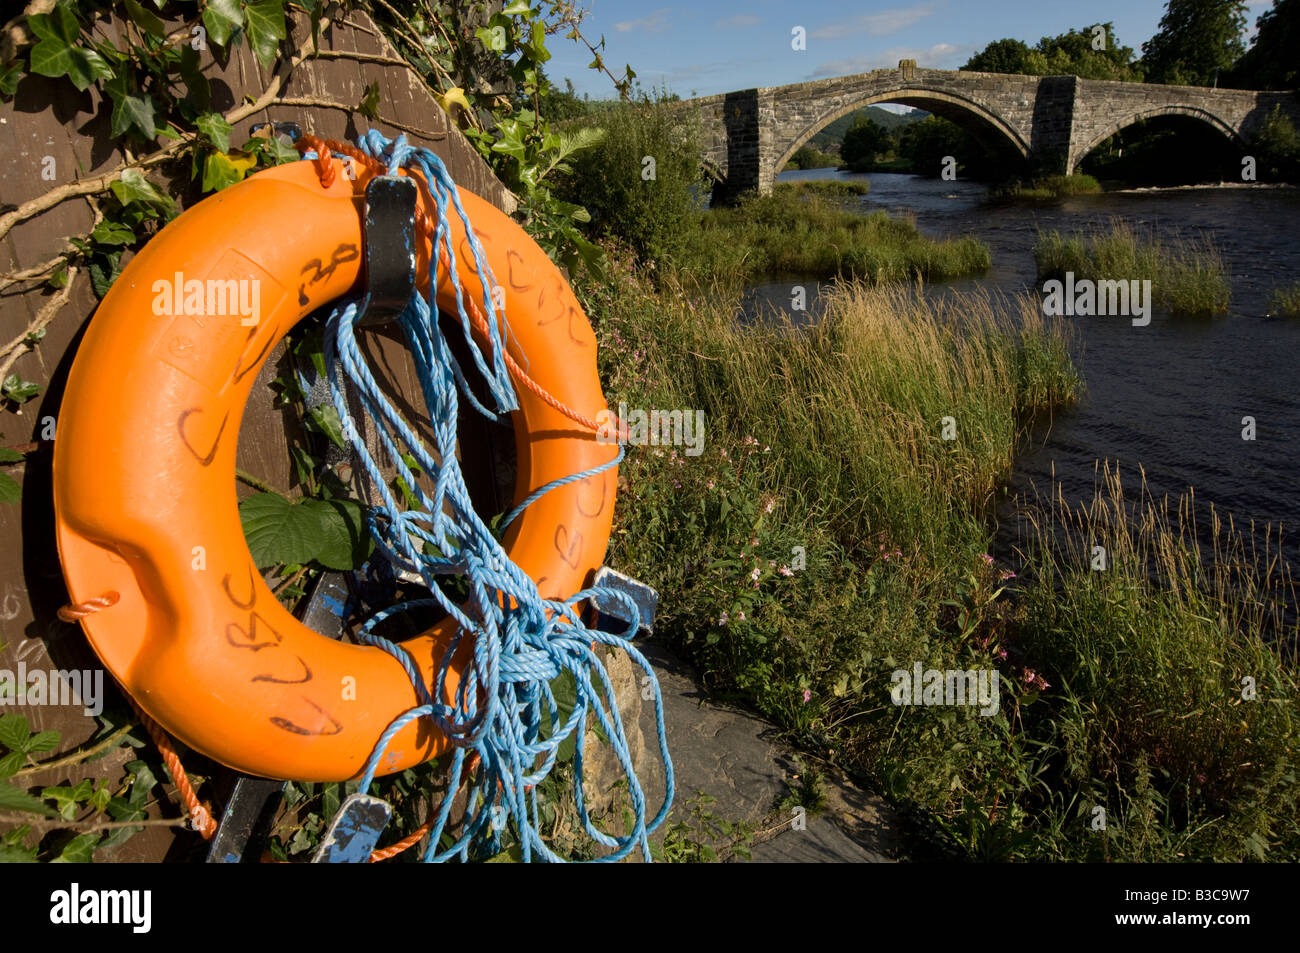 Orange lifebelt life saving equipment by the River Conwy at Llanrwst  north Wales with the old bridge in the background - Stock Image